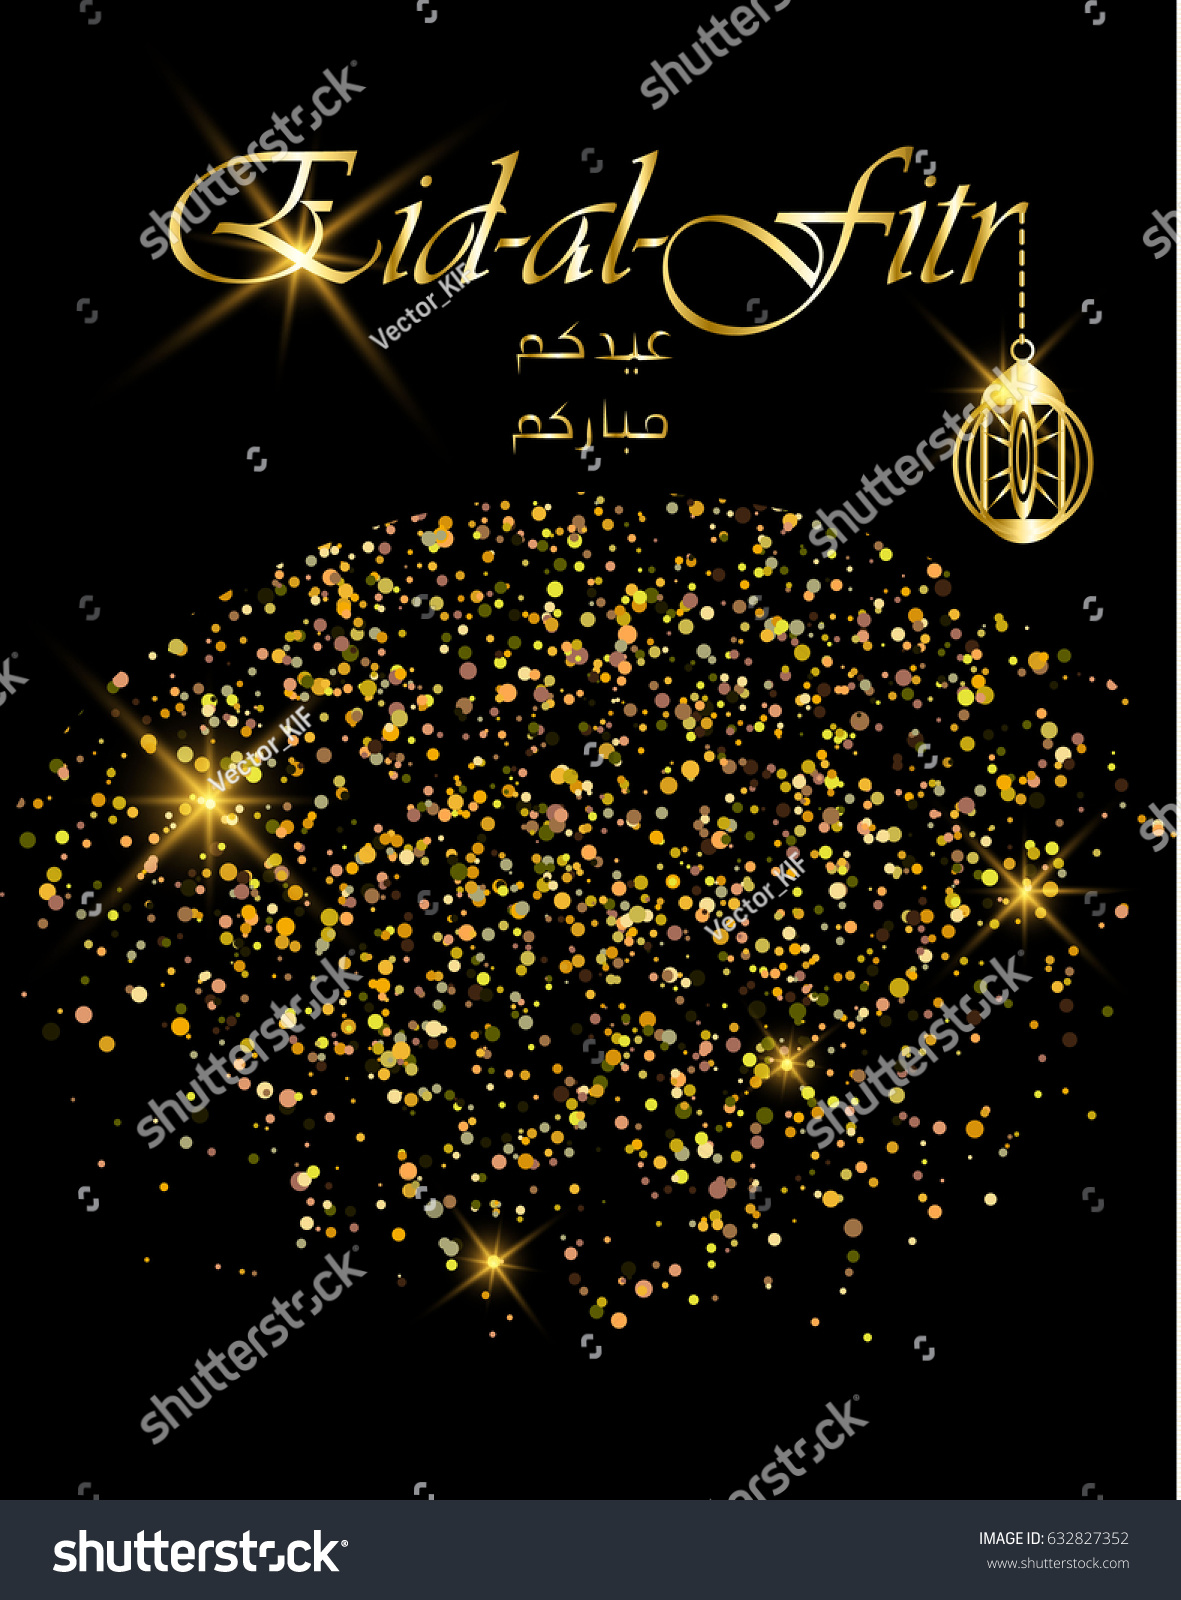 Most Inspiring Idd Eid Al-Fitr Greeting - stock-vector-eid-al-fitr-greeting-card-muslim-traditional-holiday-eid-mubarak-eid-al-fitr-muslim-traditional-632827352  Perfect Image Reference_614077 .jpg